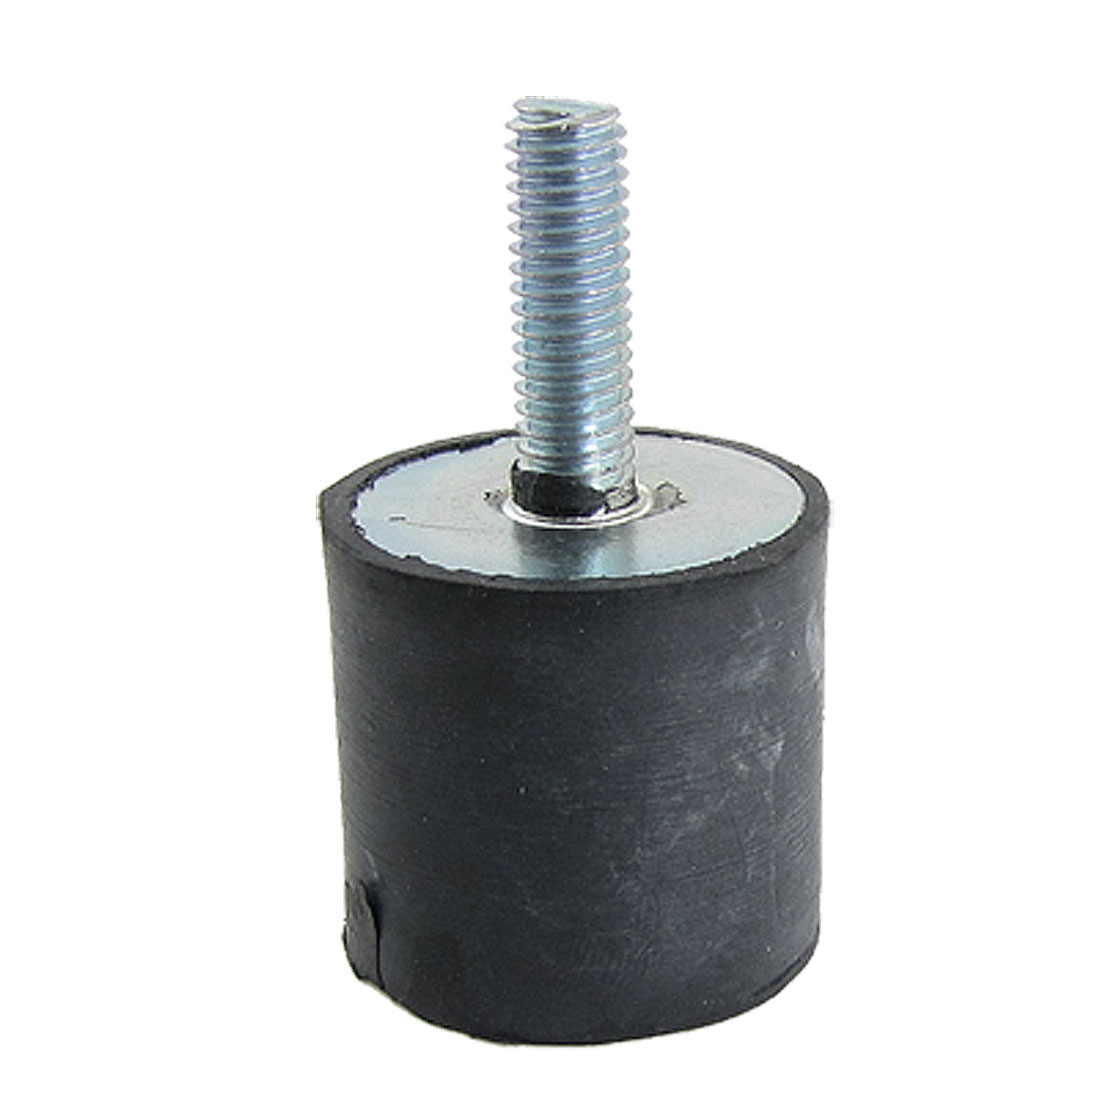 6-x-12mm-Male-Thread-Rubber-Vibration-Isolator-Mount